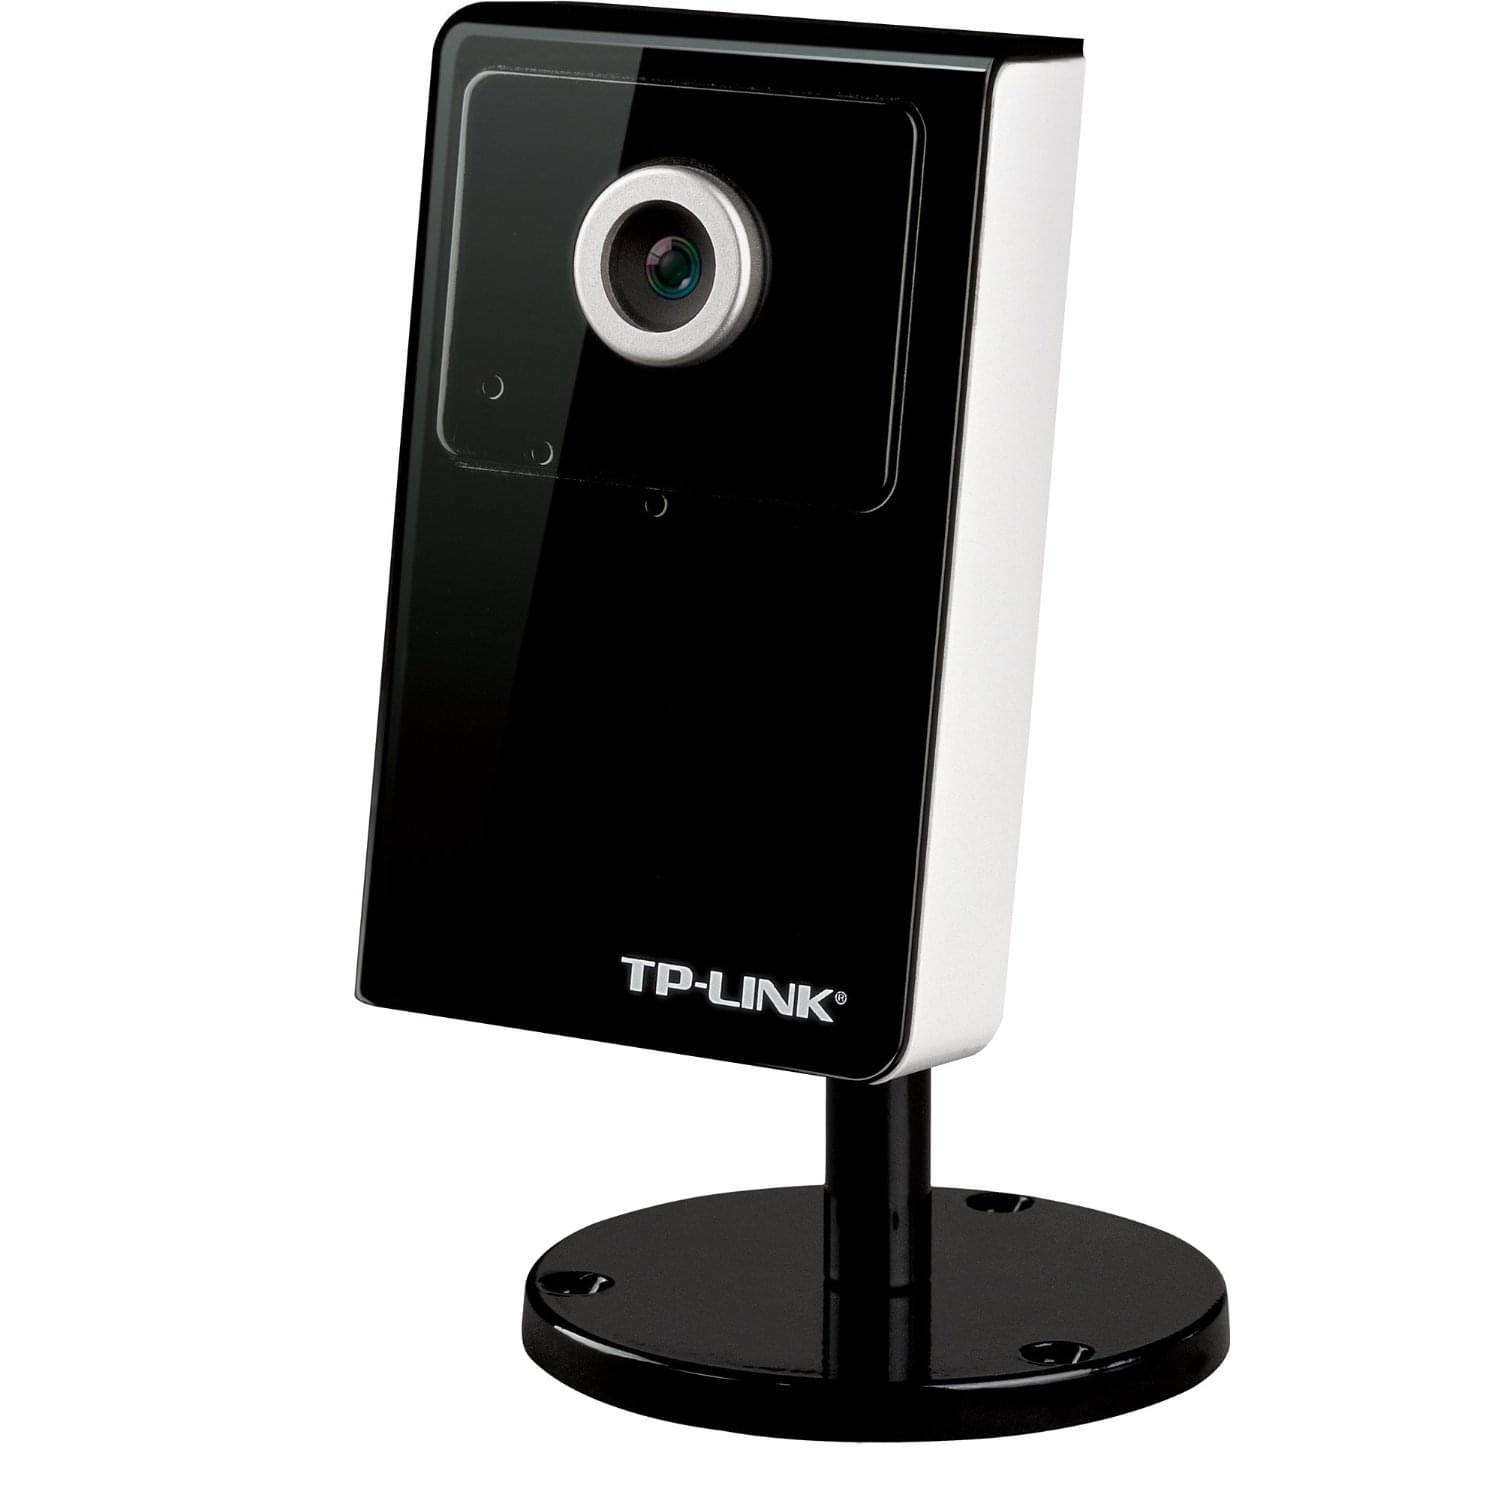 TP-Link TL-SC3130G - Caméra IP+WiFi/3GPP/2-way Audio - 0